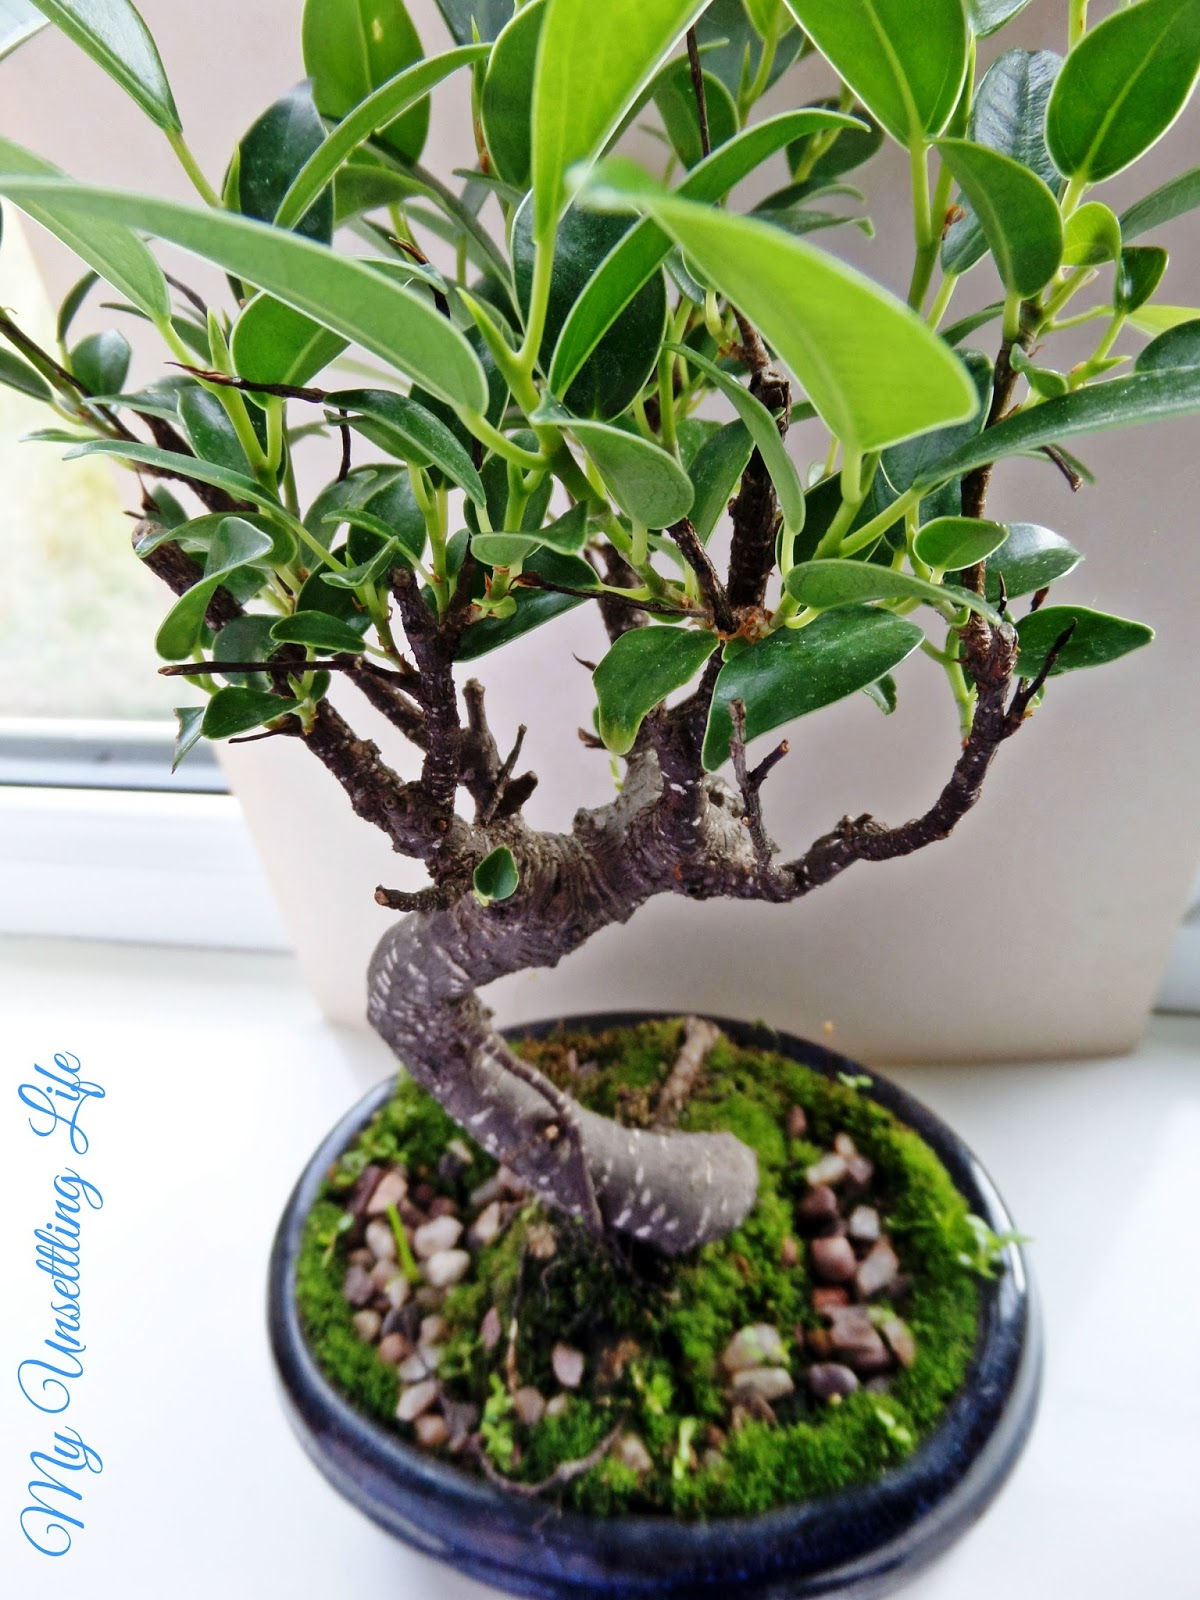 How to take care of a bonsai tree - How To Water A Bonsai